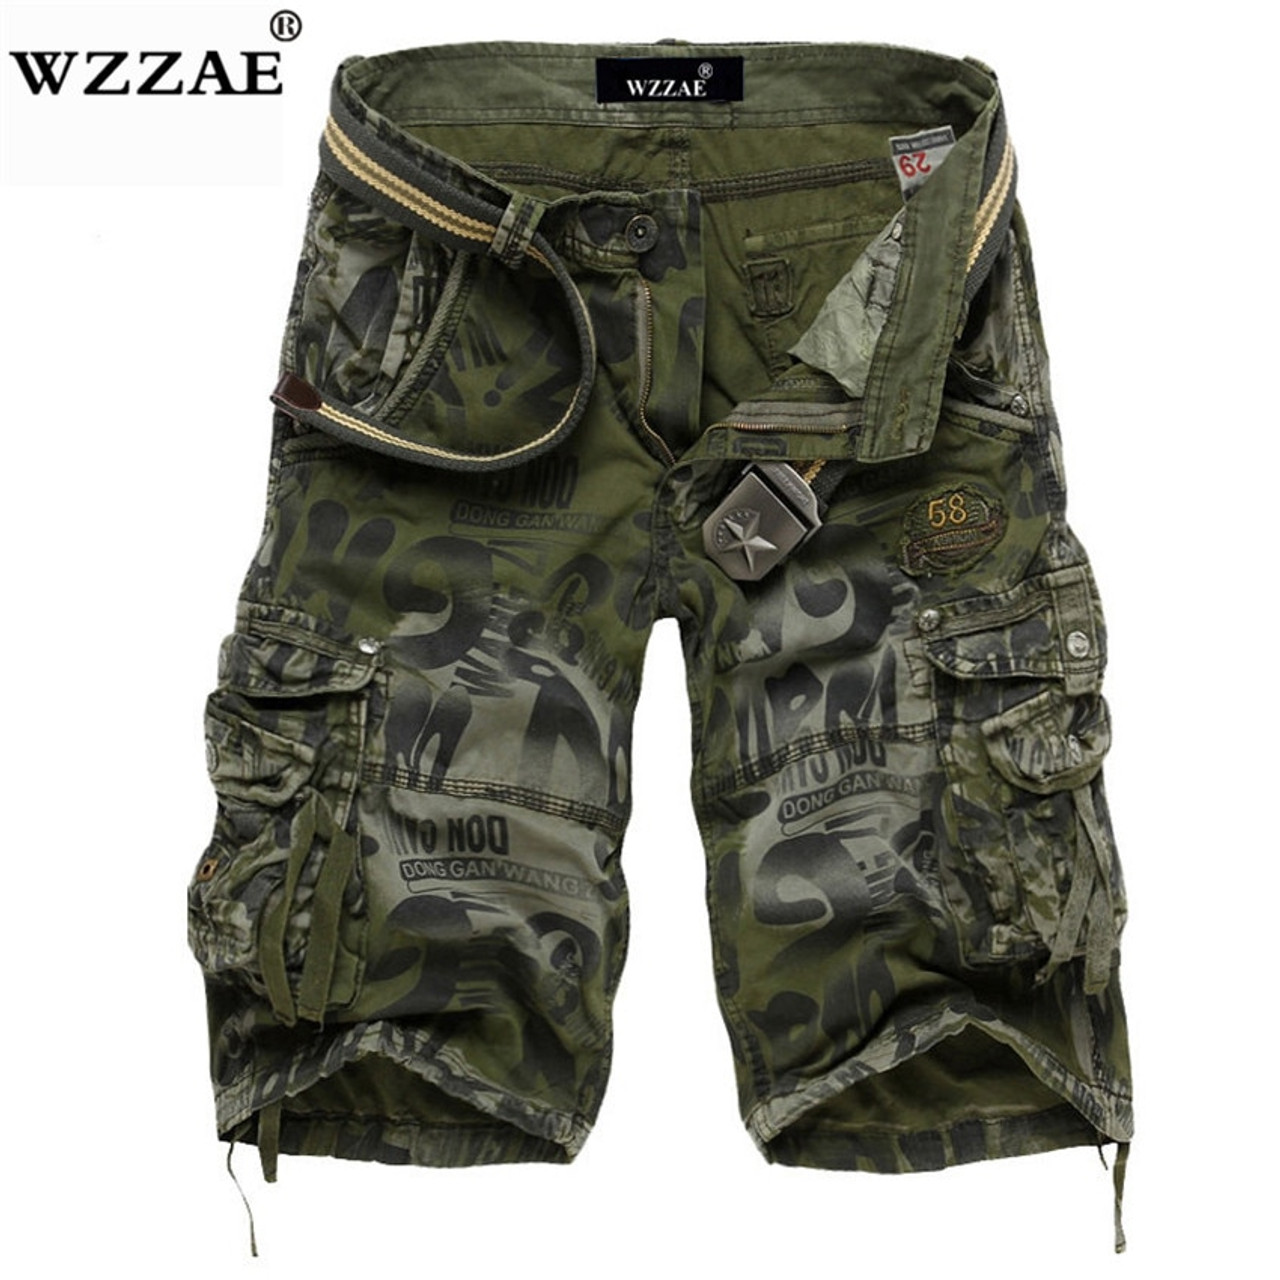 great deals 2017 get cheap low price sale WZZAE 2018 New Design Men Summer Camouflage Military Cargo Shorts Bermuda  Masculina Jeans Male Fashion Casual Baggy Denim Shorts